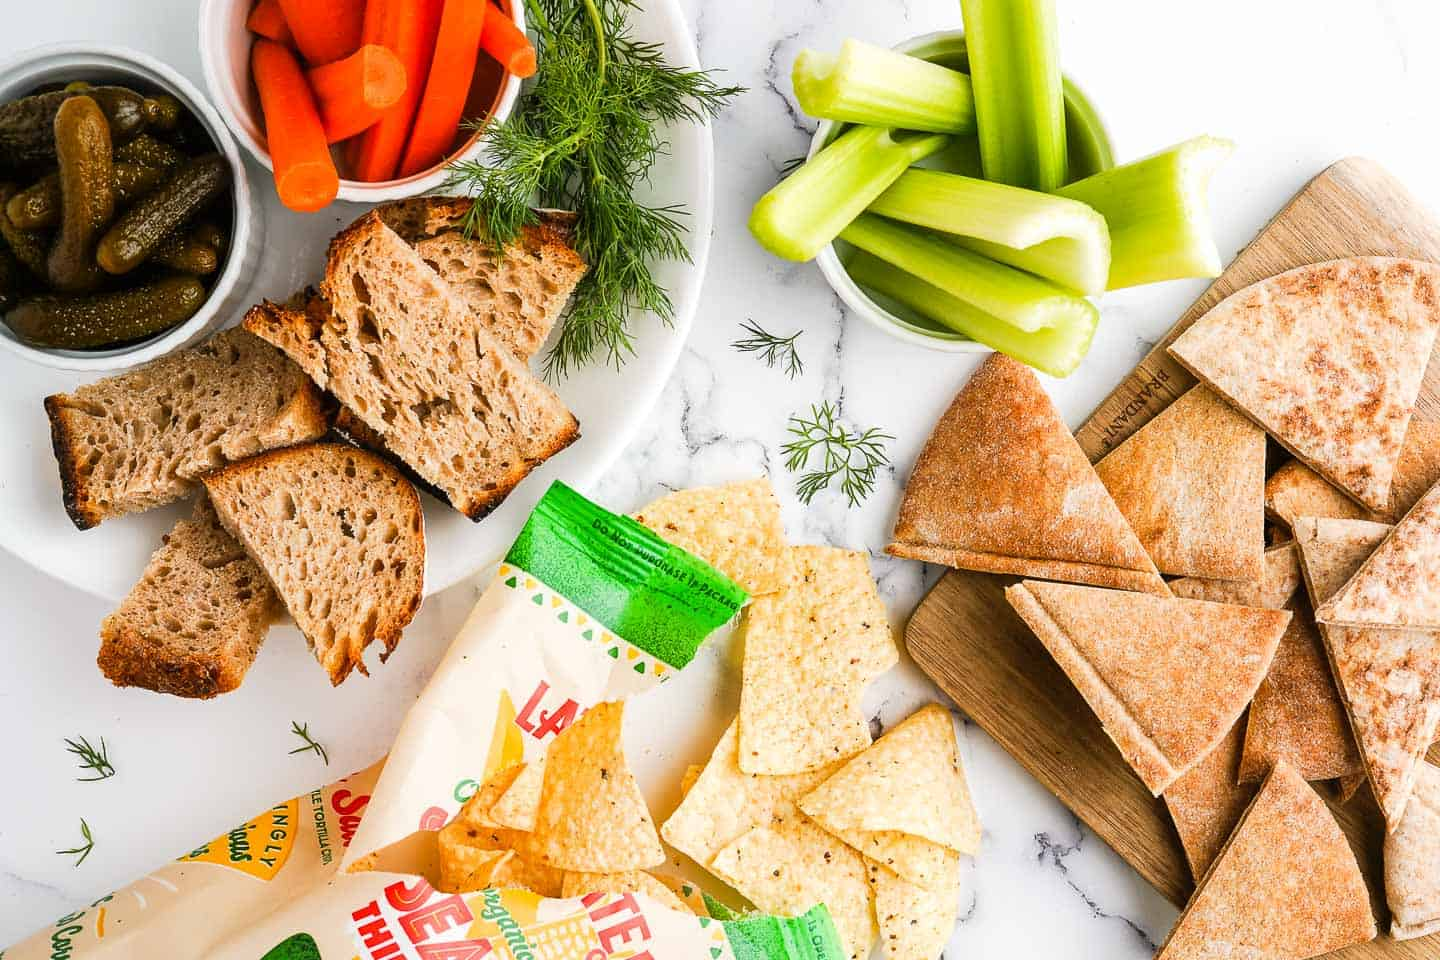 Chips Vegetables Bread and Pita